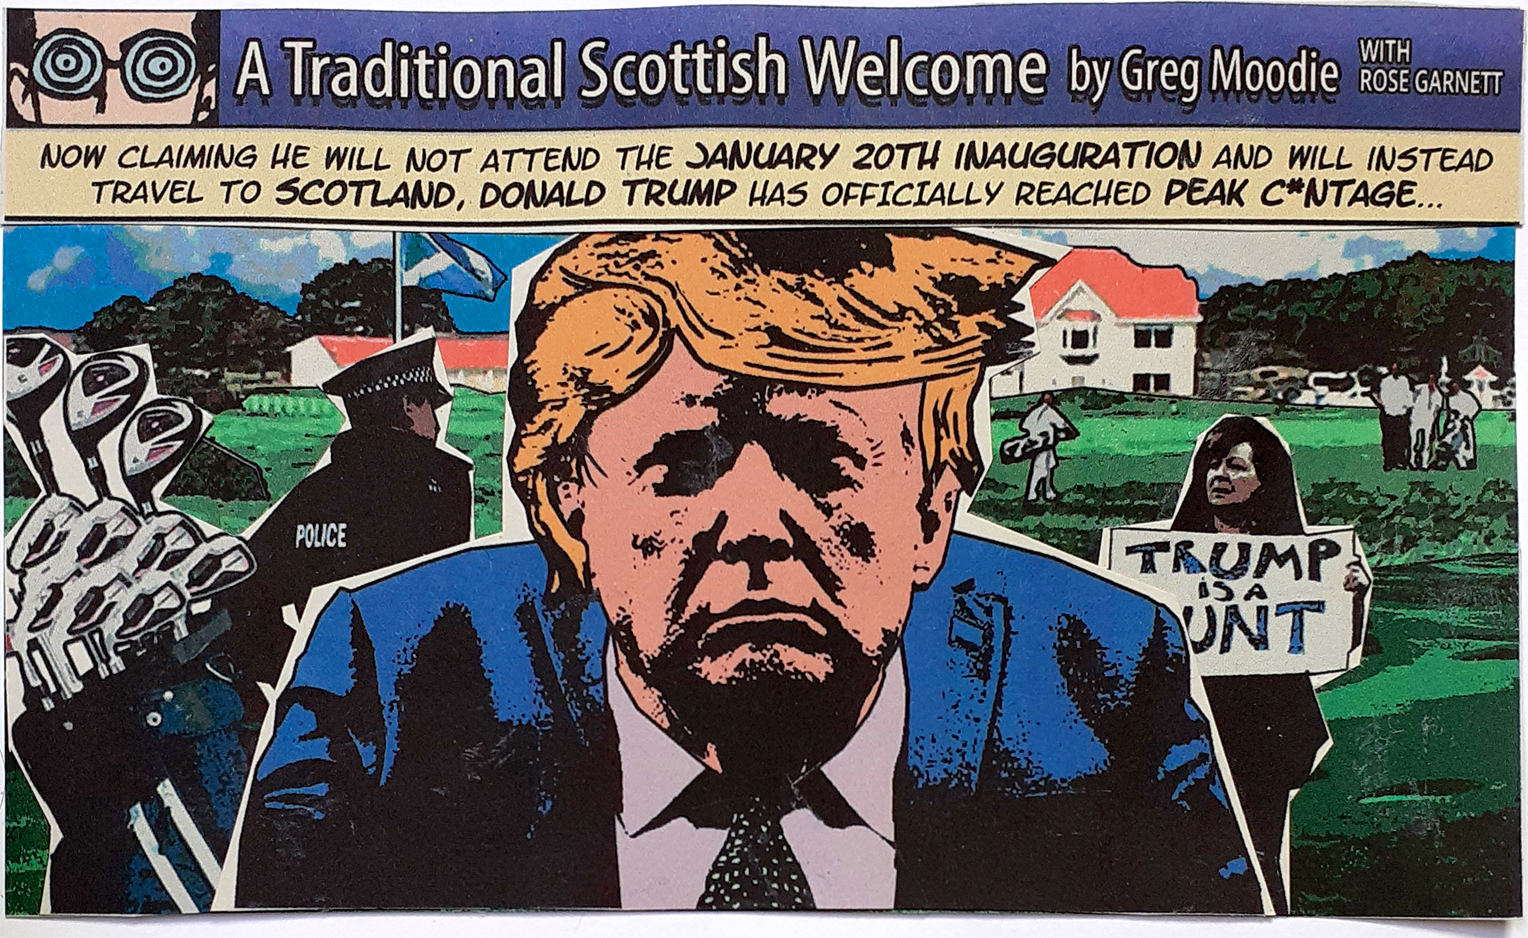 A Traditional Scottish Welcome